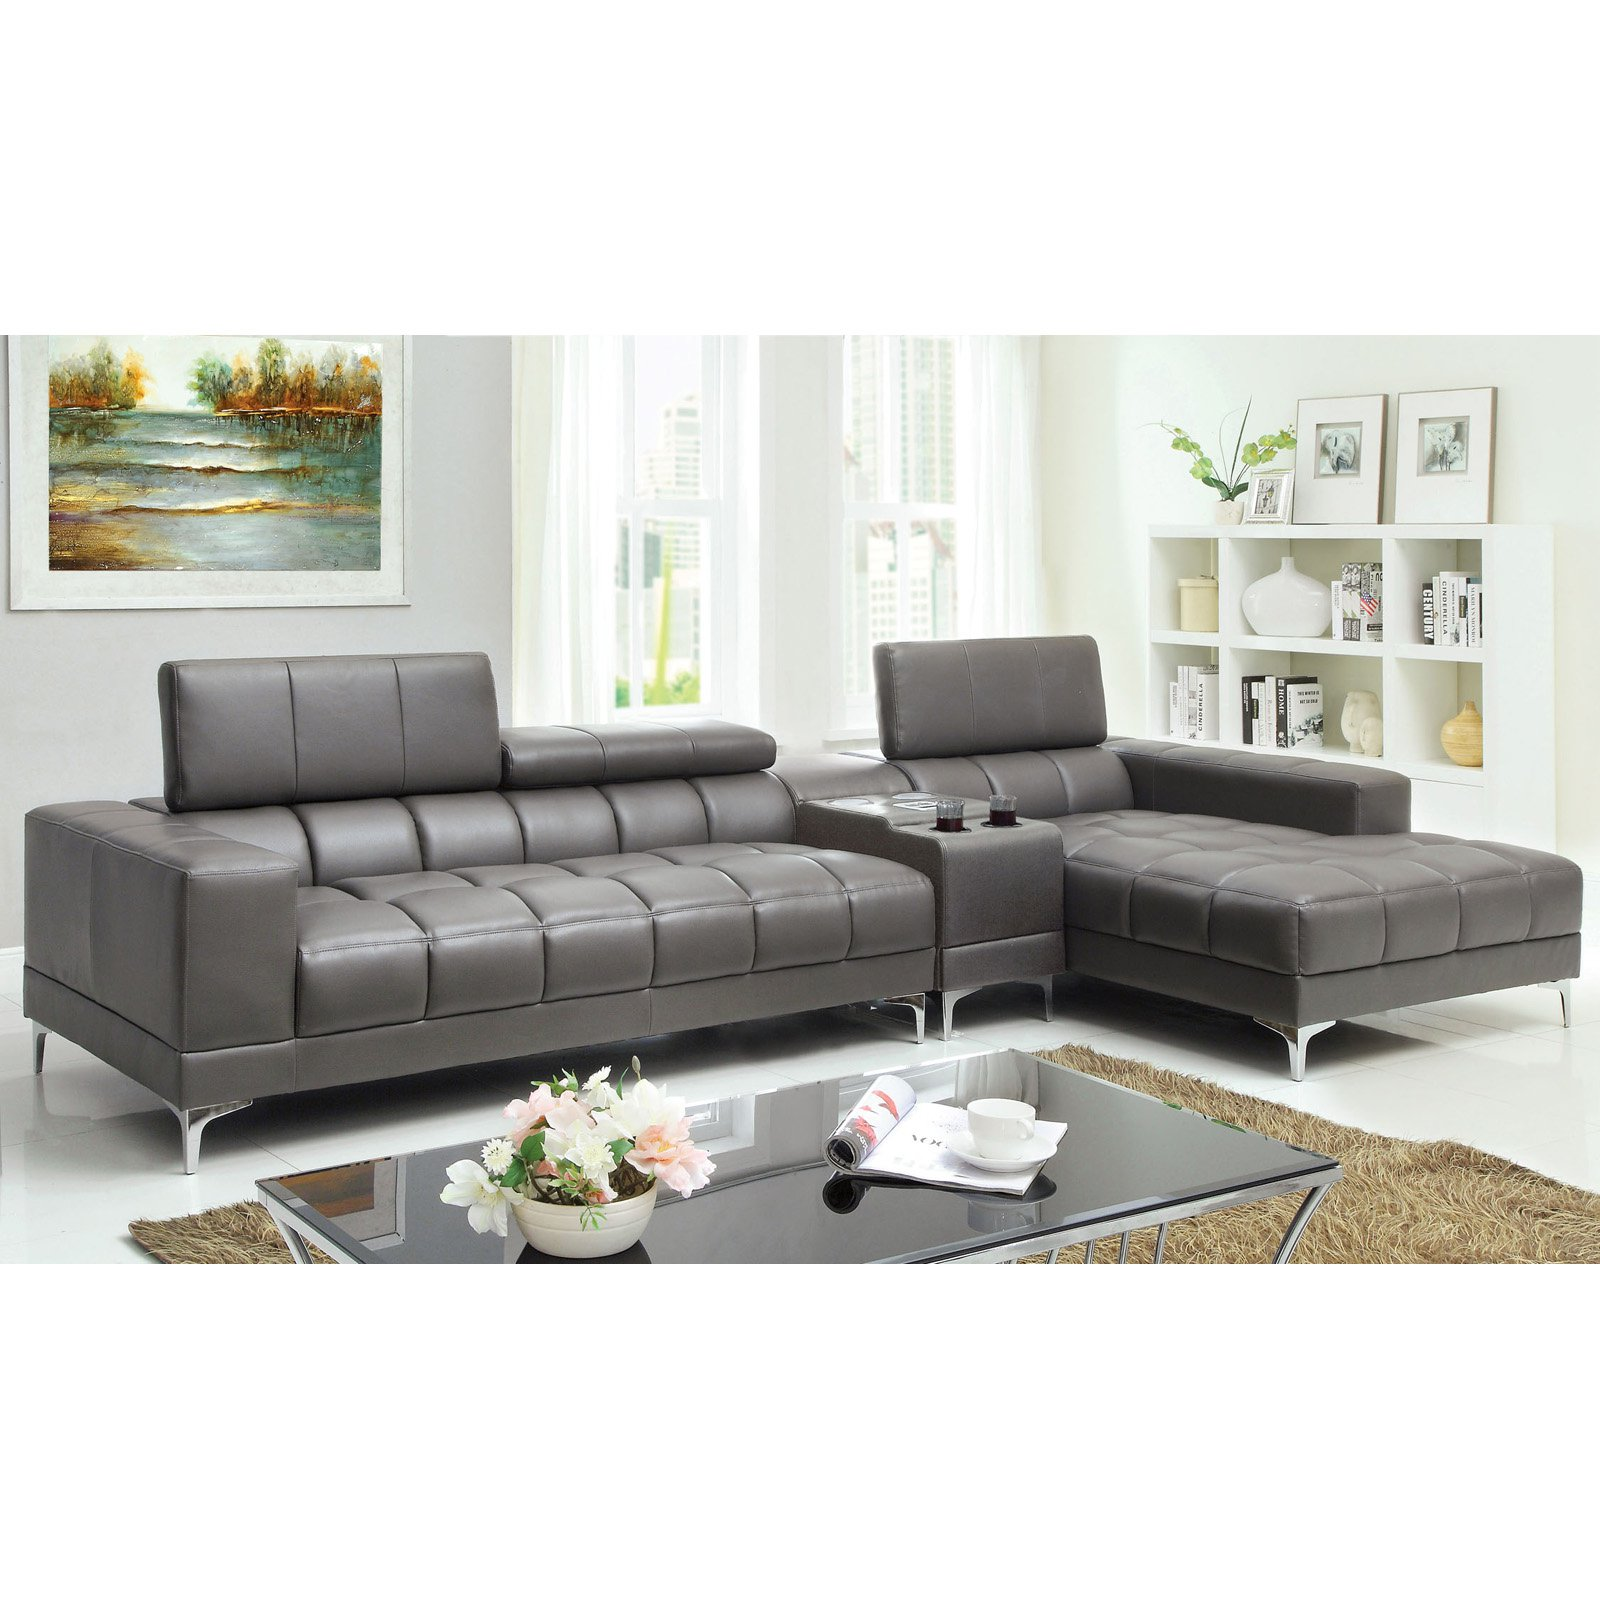 Wondrous Furniture Of America Riverton 2 Piece Sectional Sofa With Optional Bluetooth Console Gray Alphanode Cool Chair Designs And Ideas Alphanodeonline